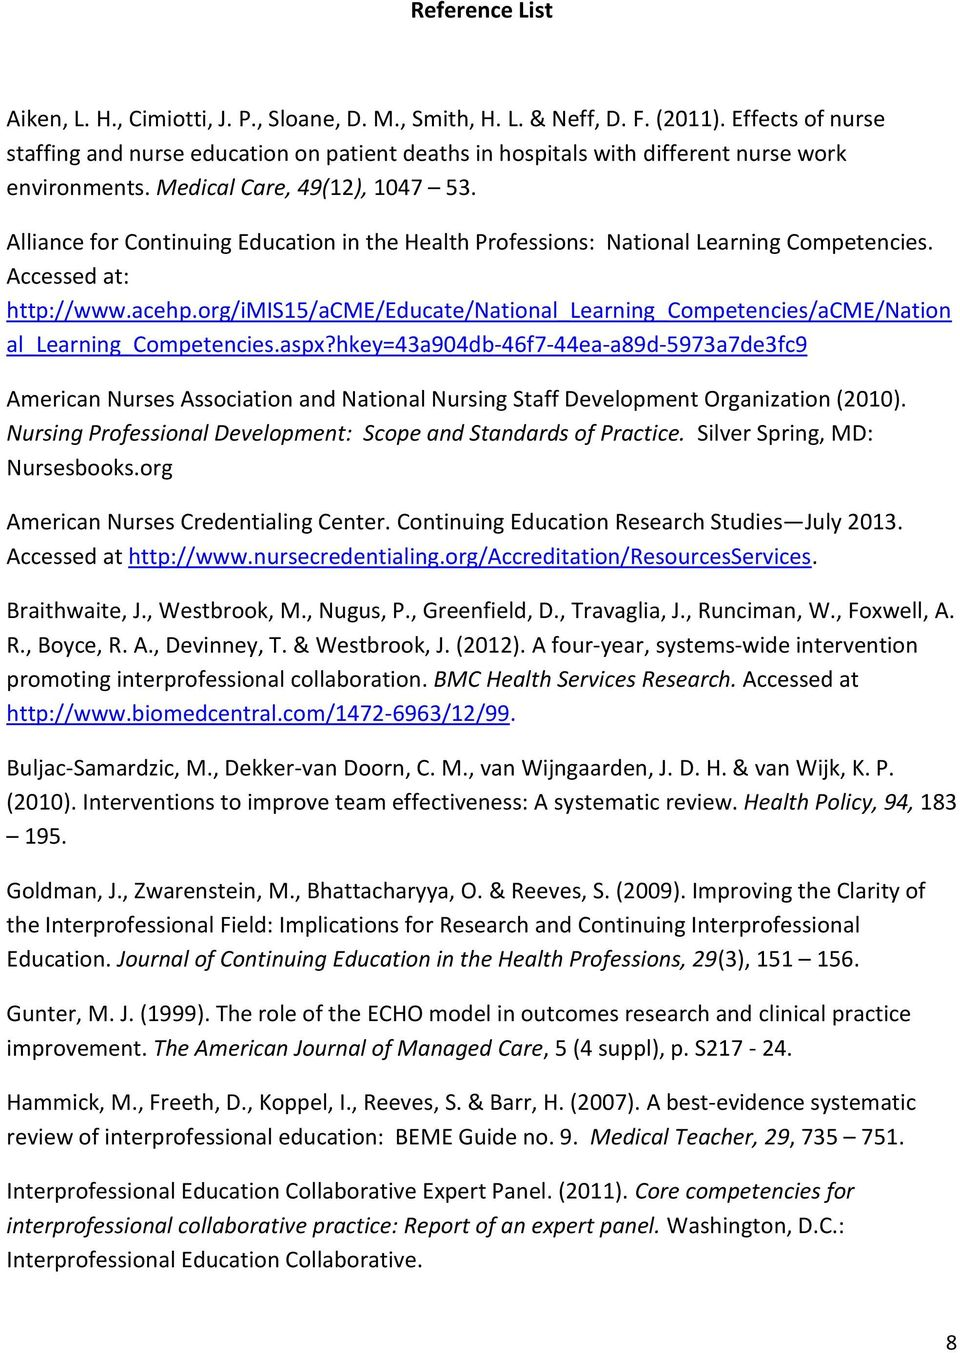 Alliance for Continuing Education in the Health Professions: National Learning Competencies. Accessed at: http://www.acehp.